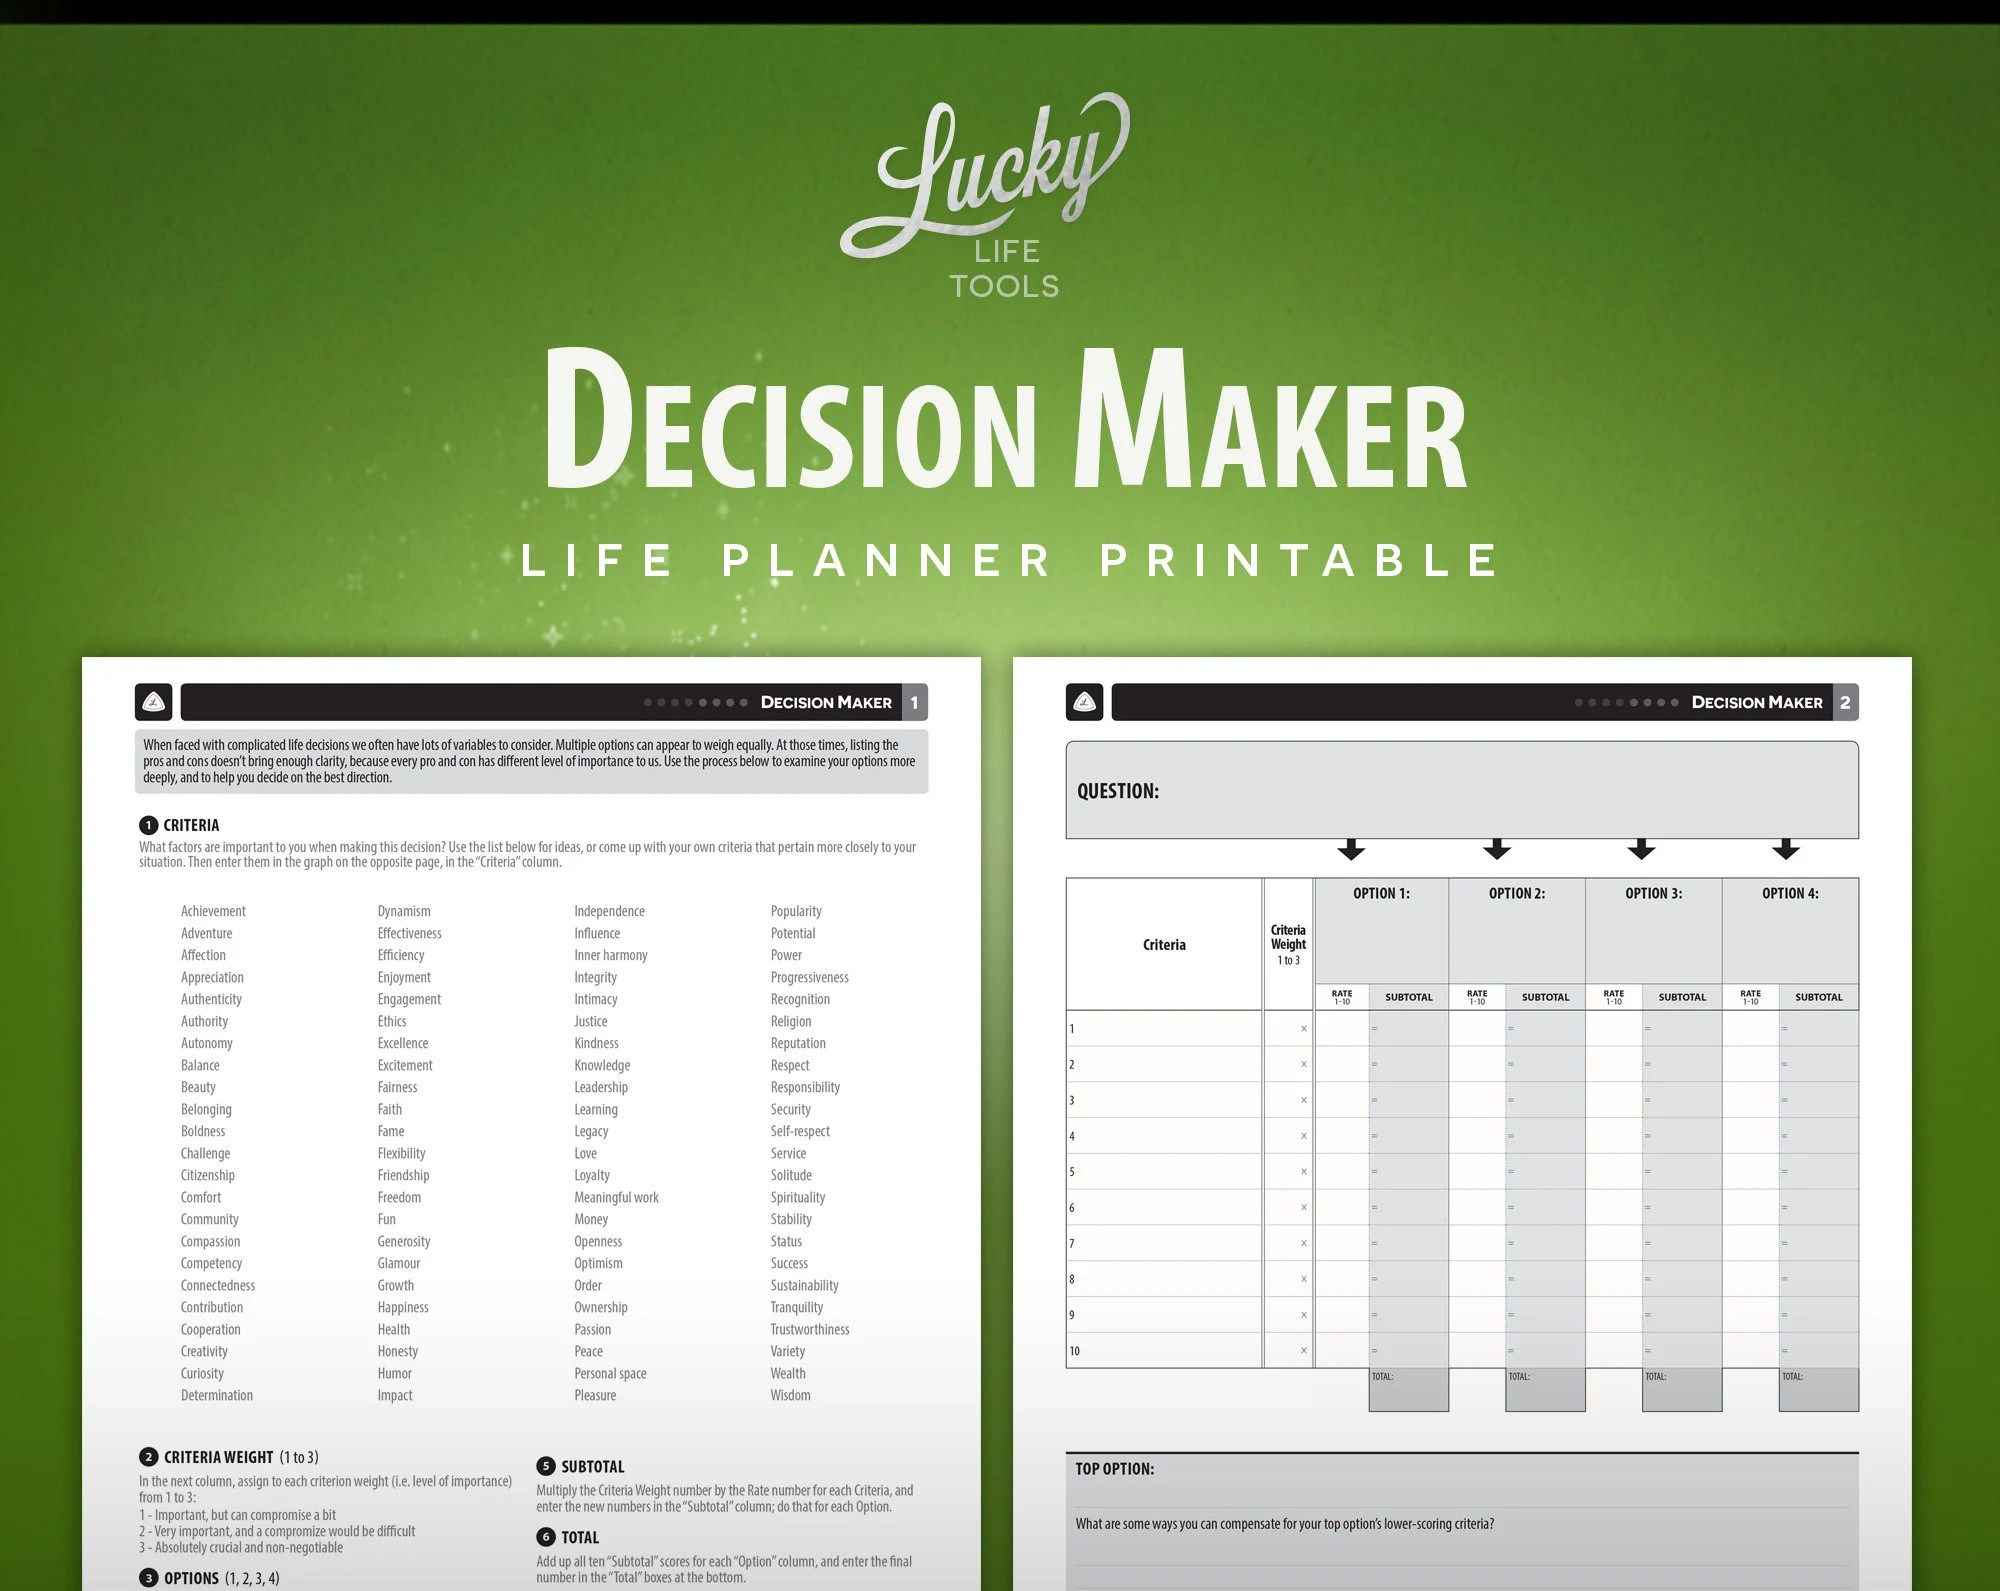 Decision Maker Worksheet Exercise By Lucky Life Tools